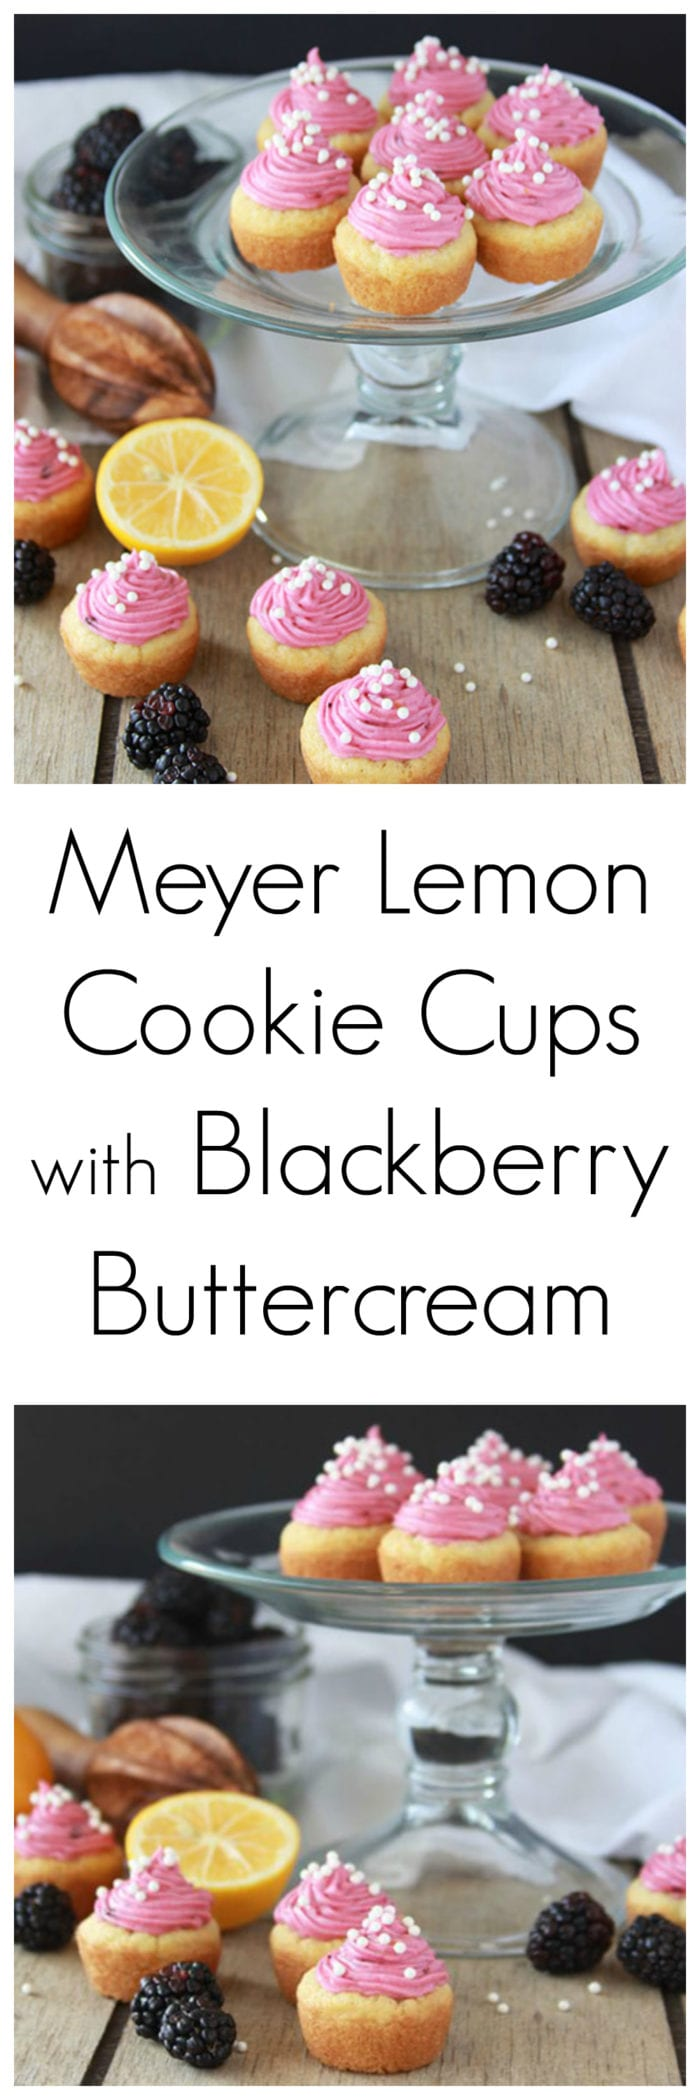 Meyer Lemon Cookie Cups with Blackberry Buttercream is a dainty, lovely, decadent dessert! www.cookingwithruthie.com